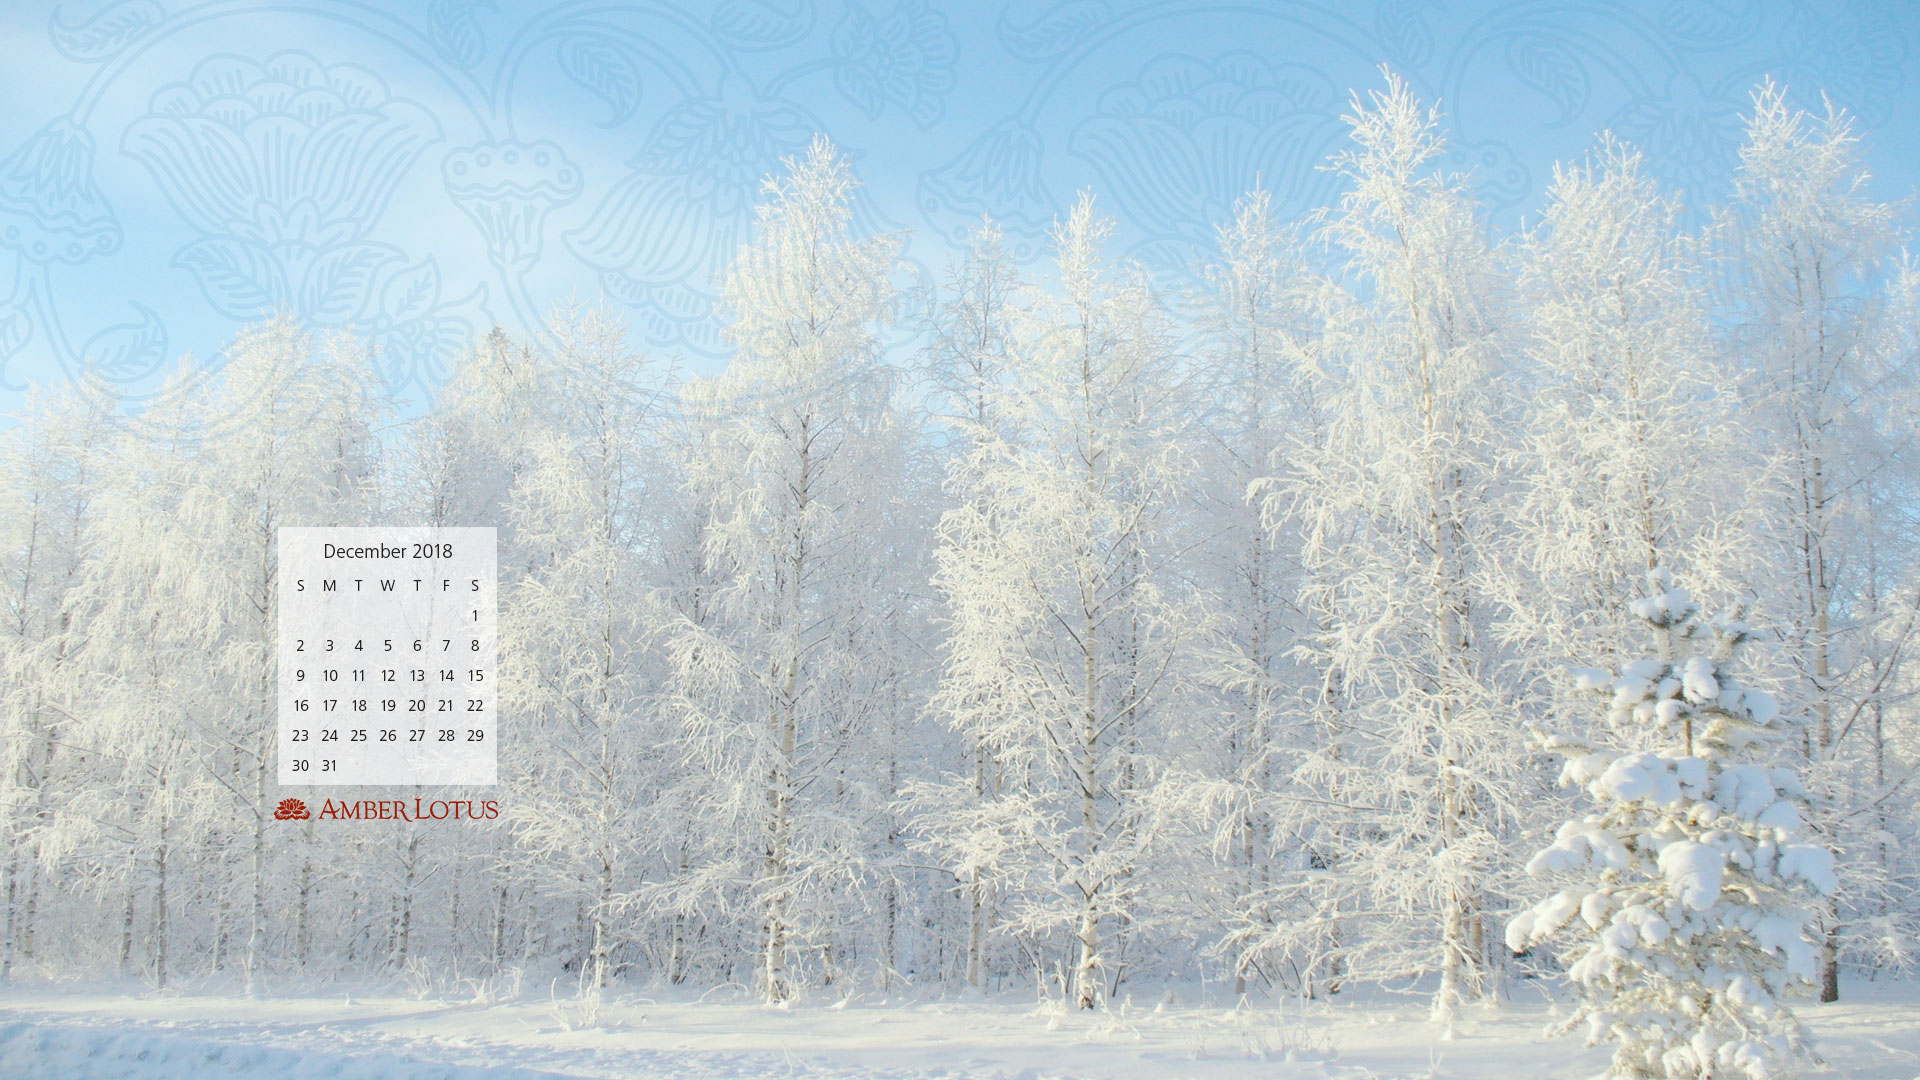 Desktop Wallpaper Calendar December 2018 Free To